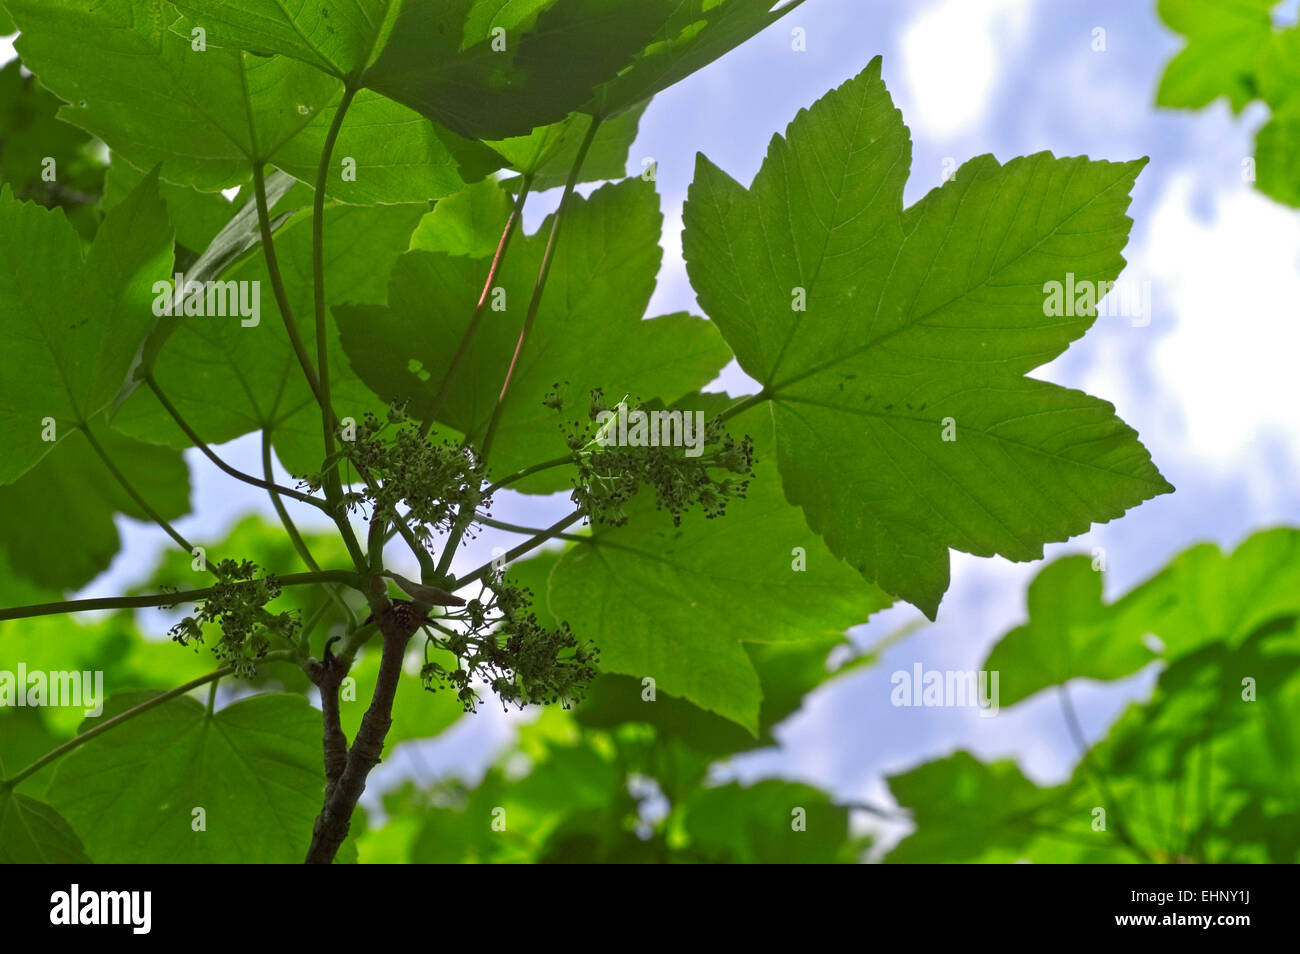 sycamore maple false plane tree acer pseudoplatanus close up